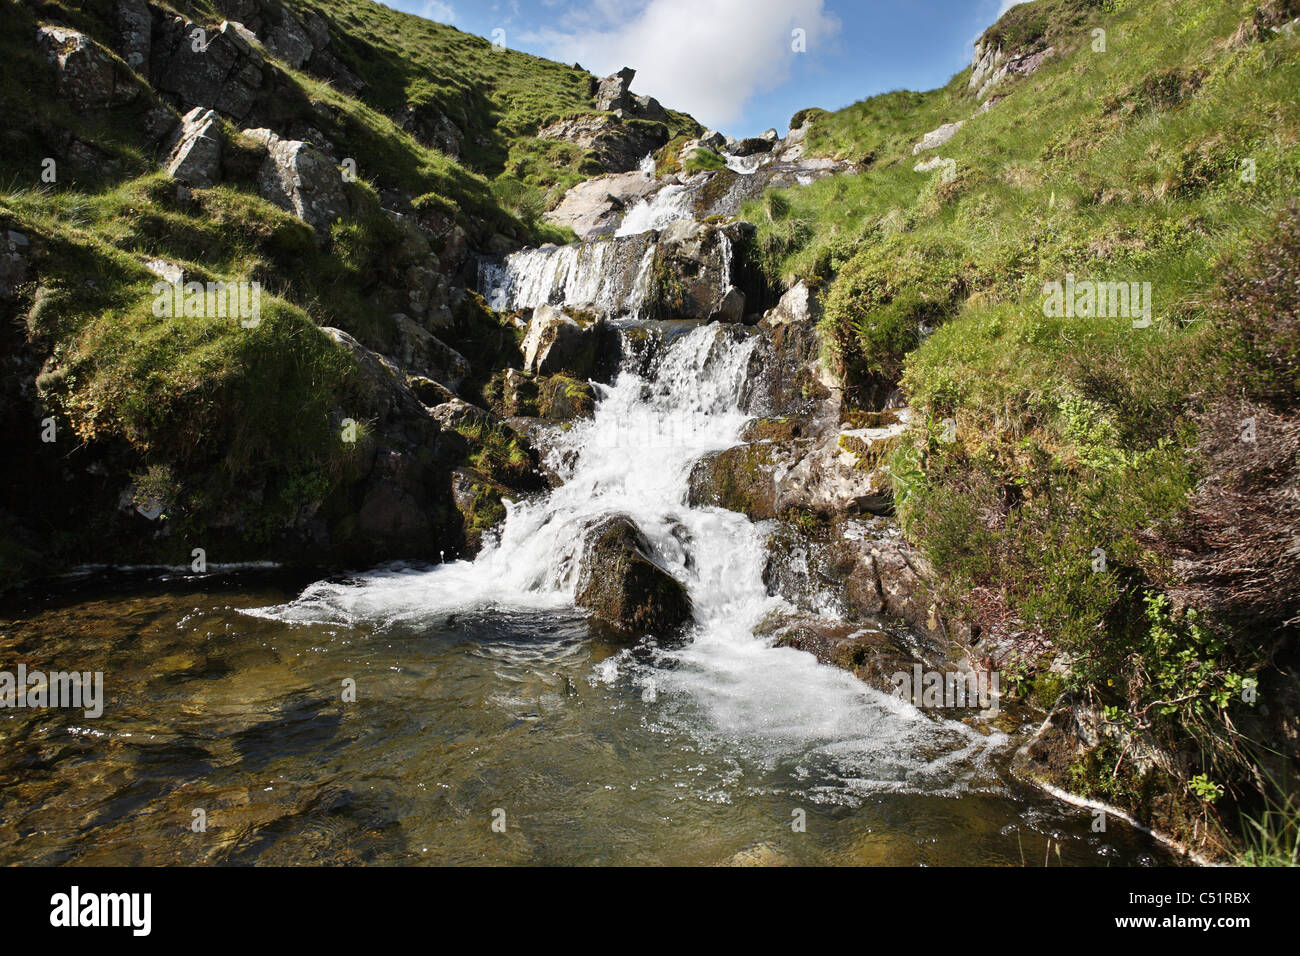 the-upper-reaches-of-cautley-spout-water